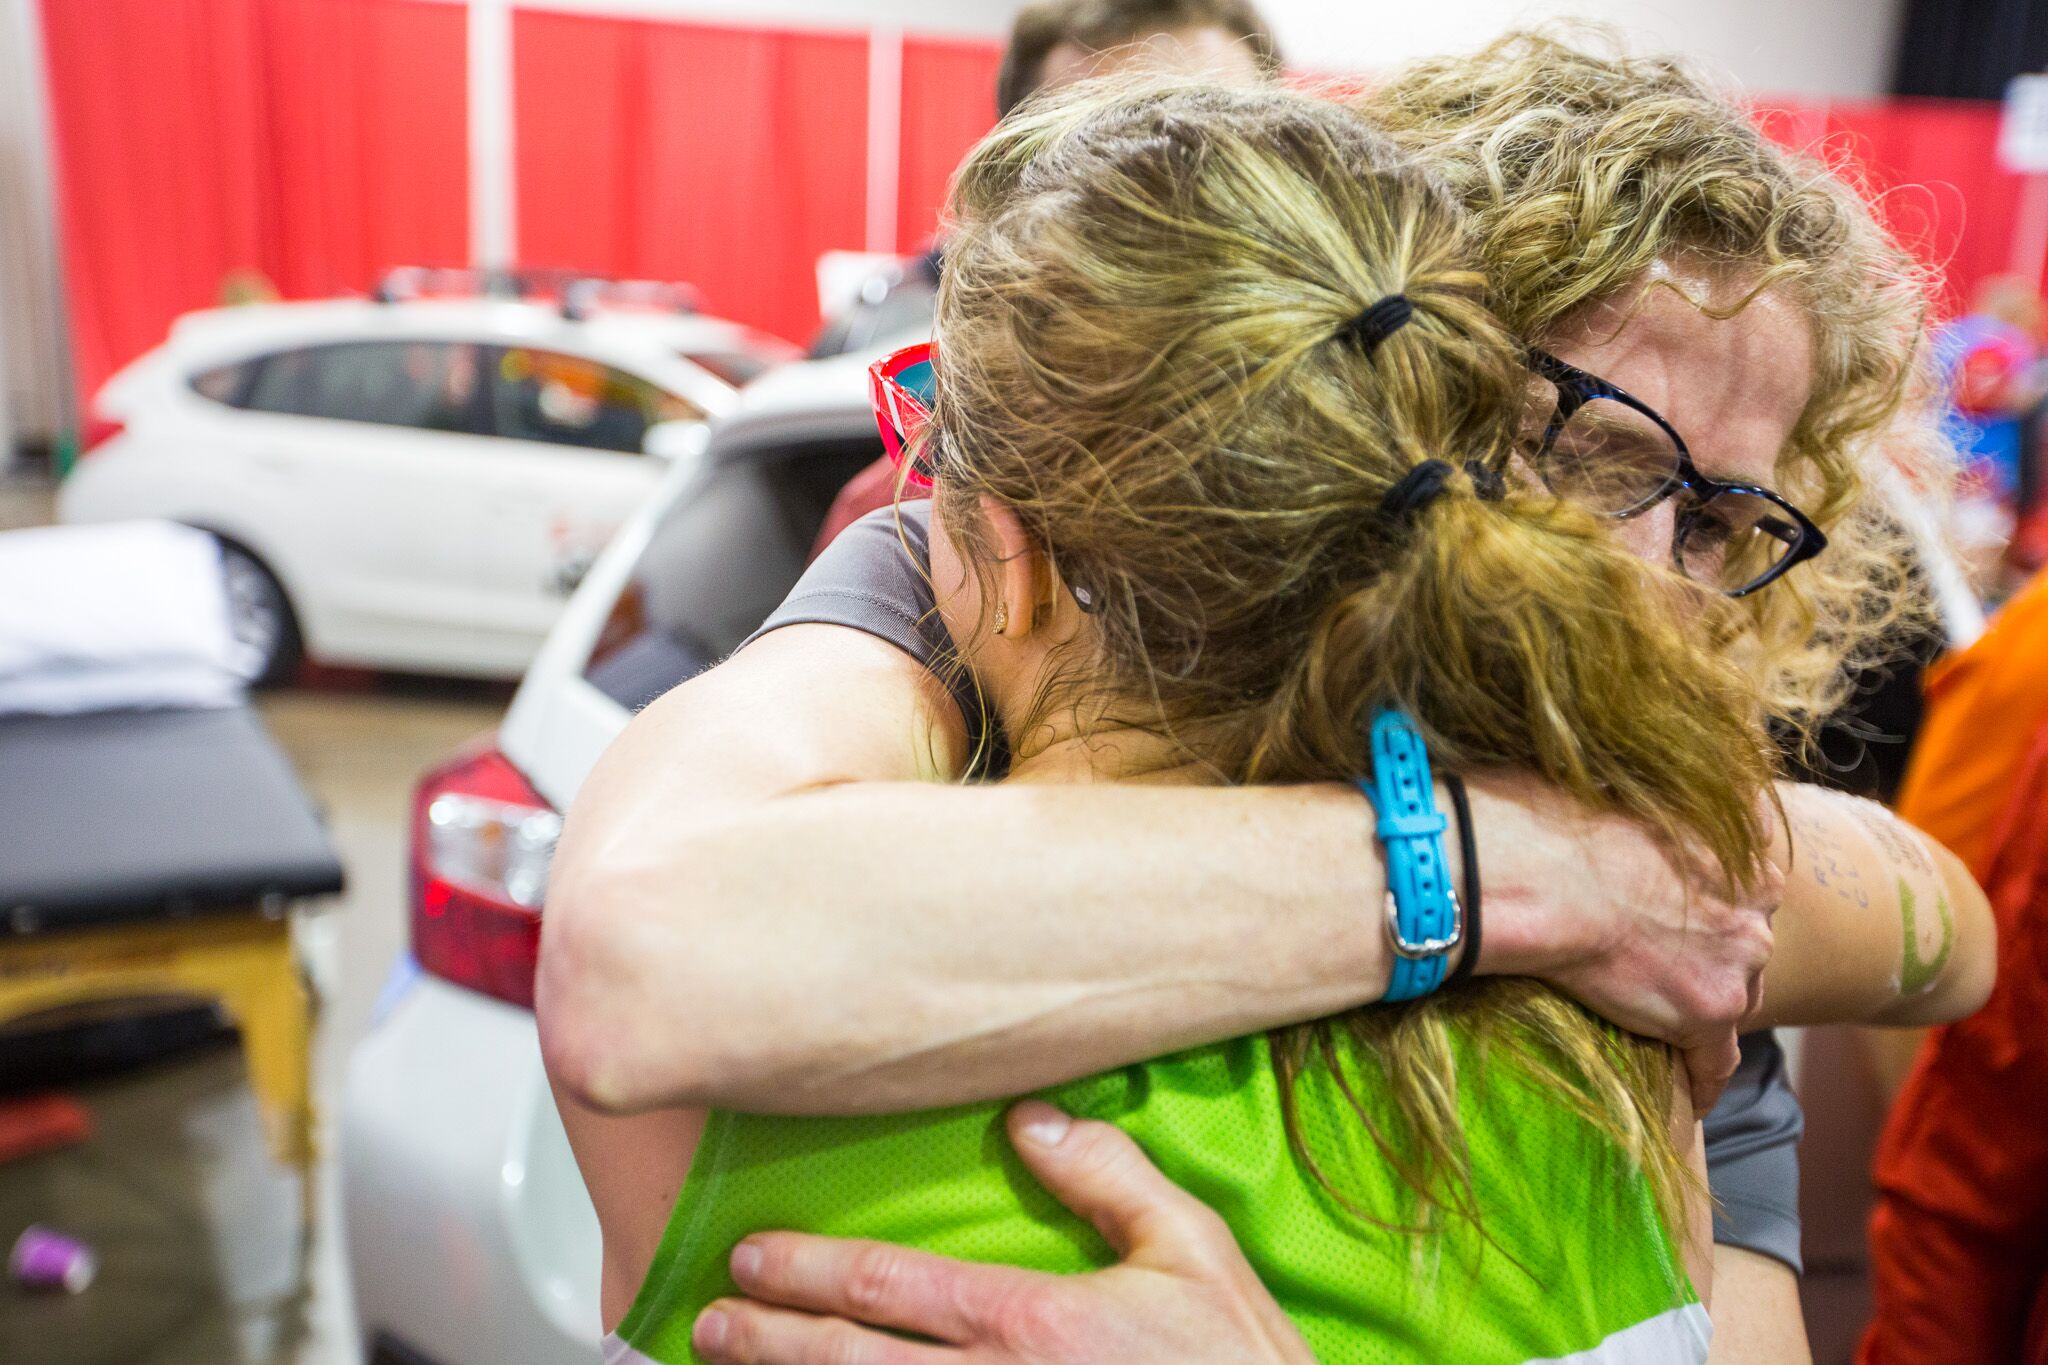 Louise Taylor and Arielle Fitzgerald embrace after Arielle broke 2 Guinness World Records